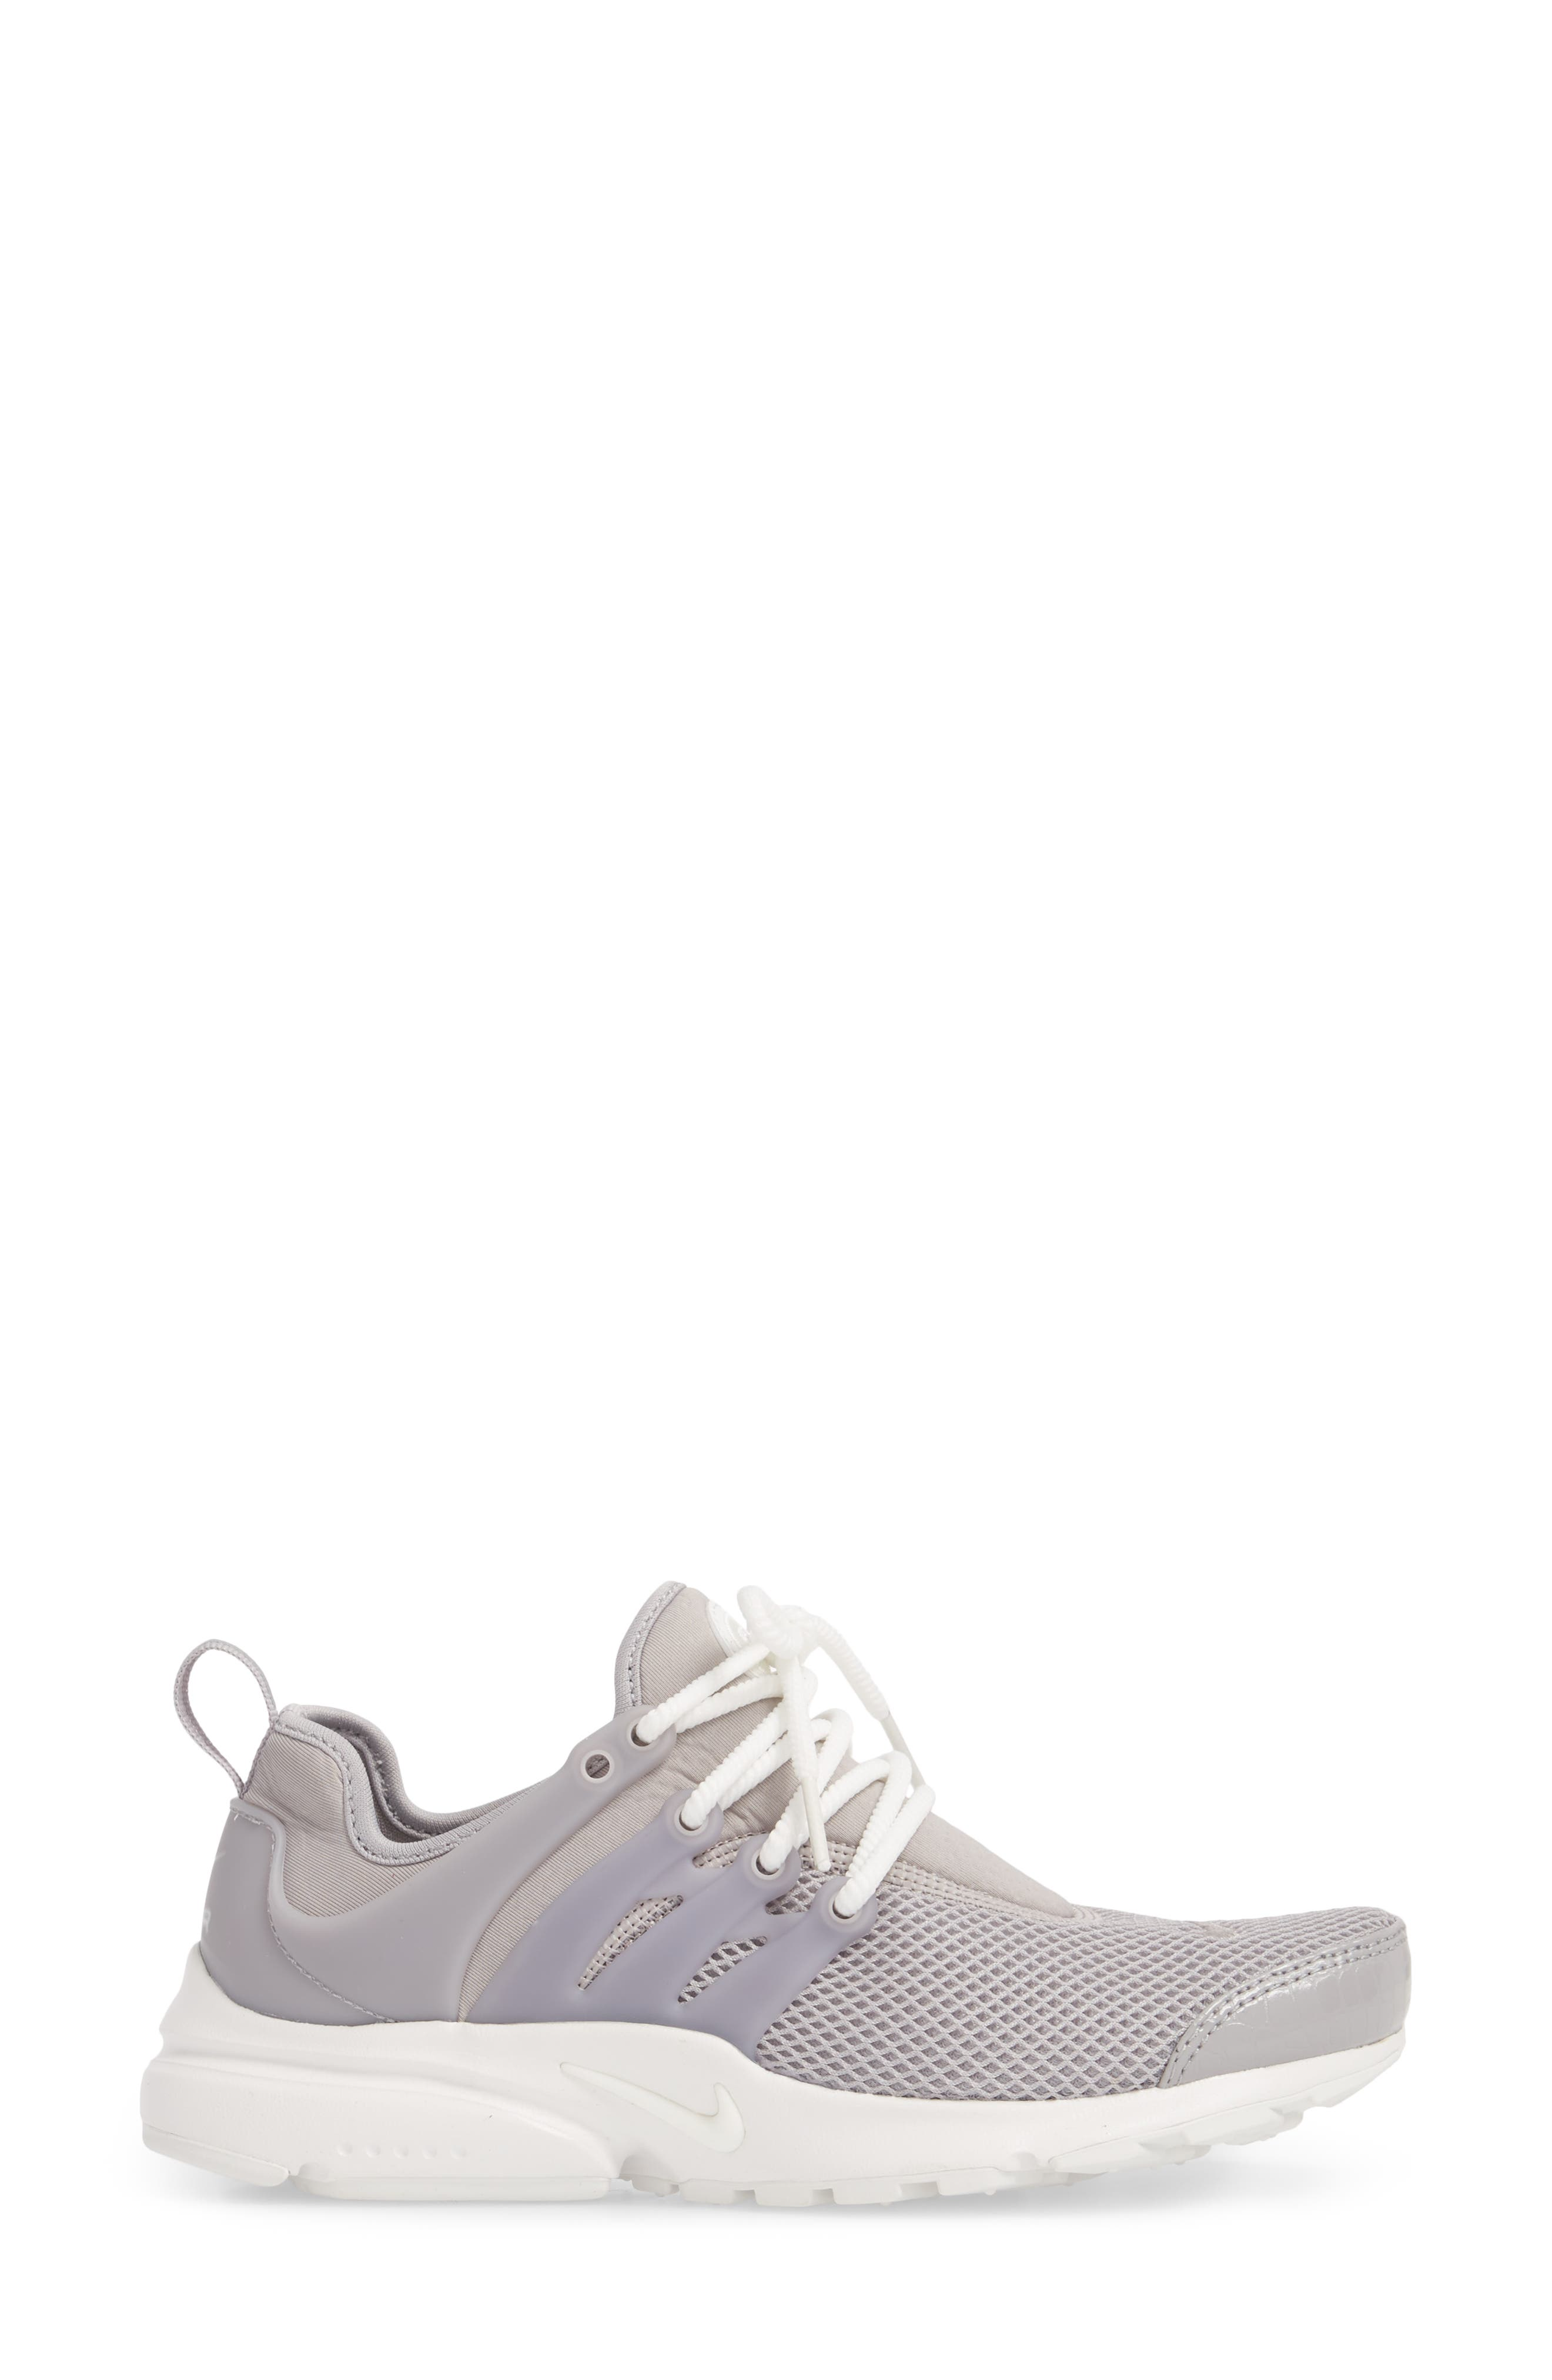 Air Presto SE Sneaker,                             Alternate thumbnail 3, color,                             Atmosphere Grey